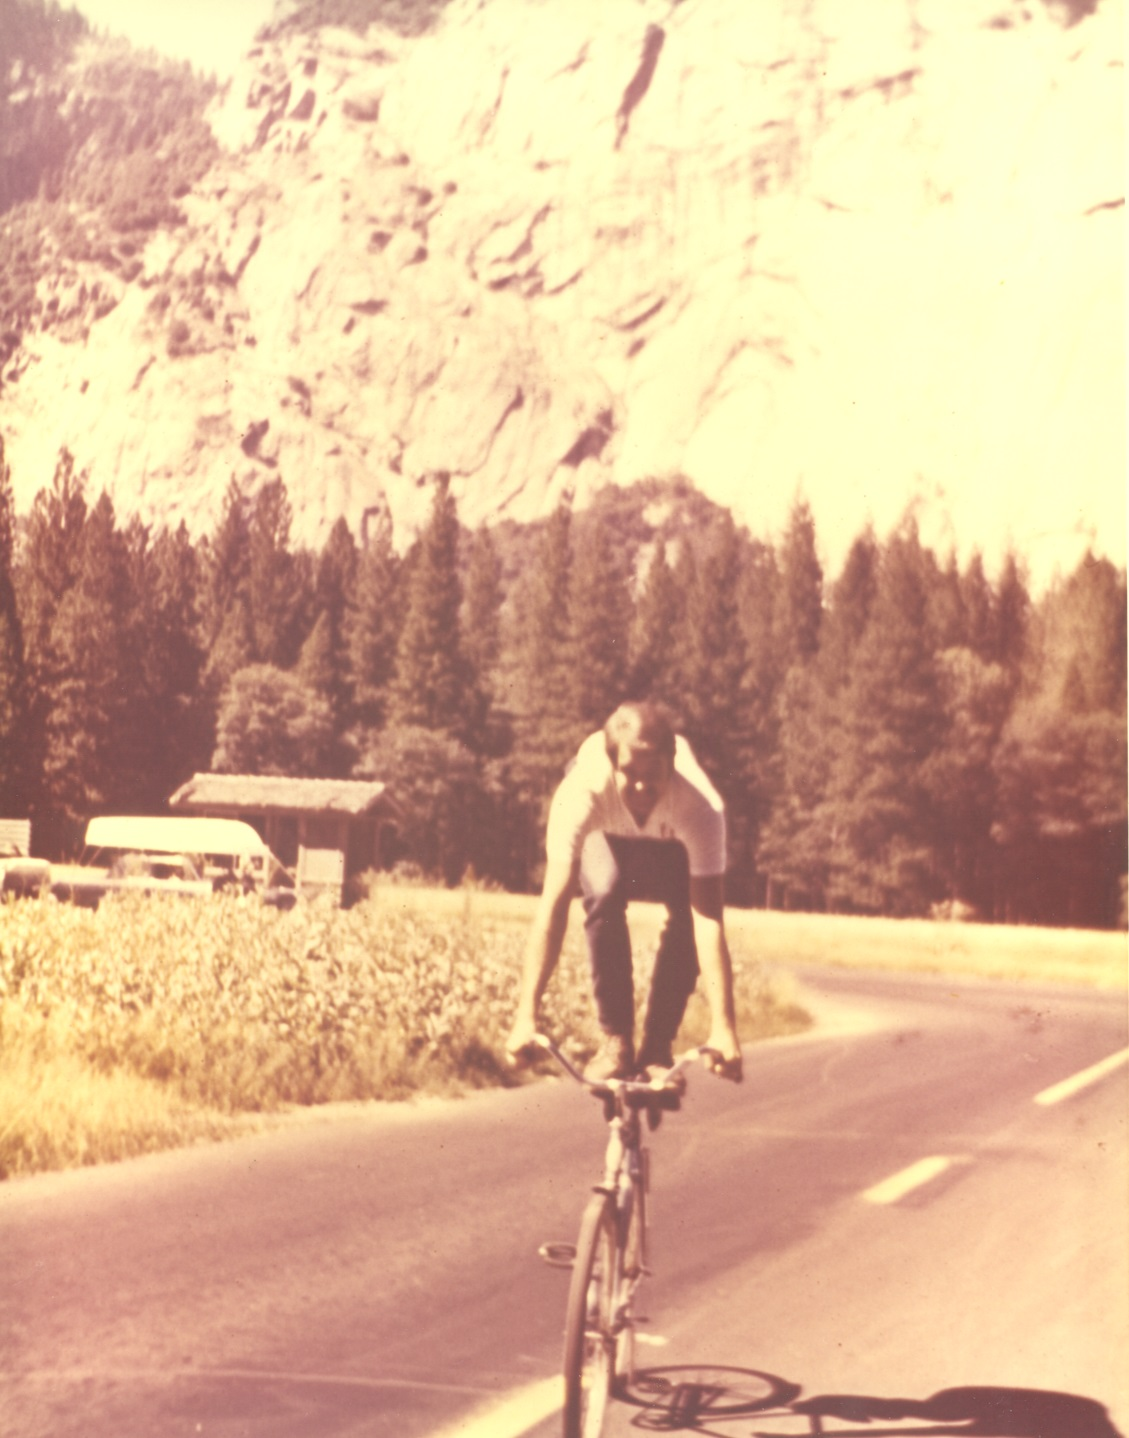 Jim Riordan Standing on bicycle seat in Yosemite